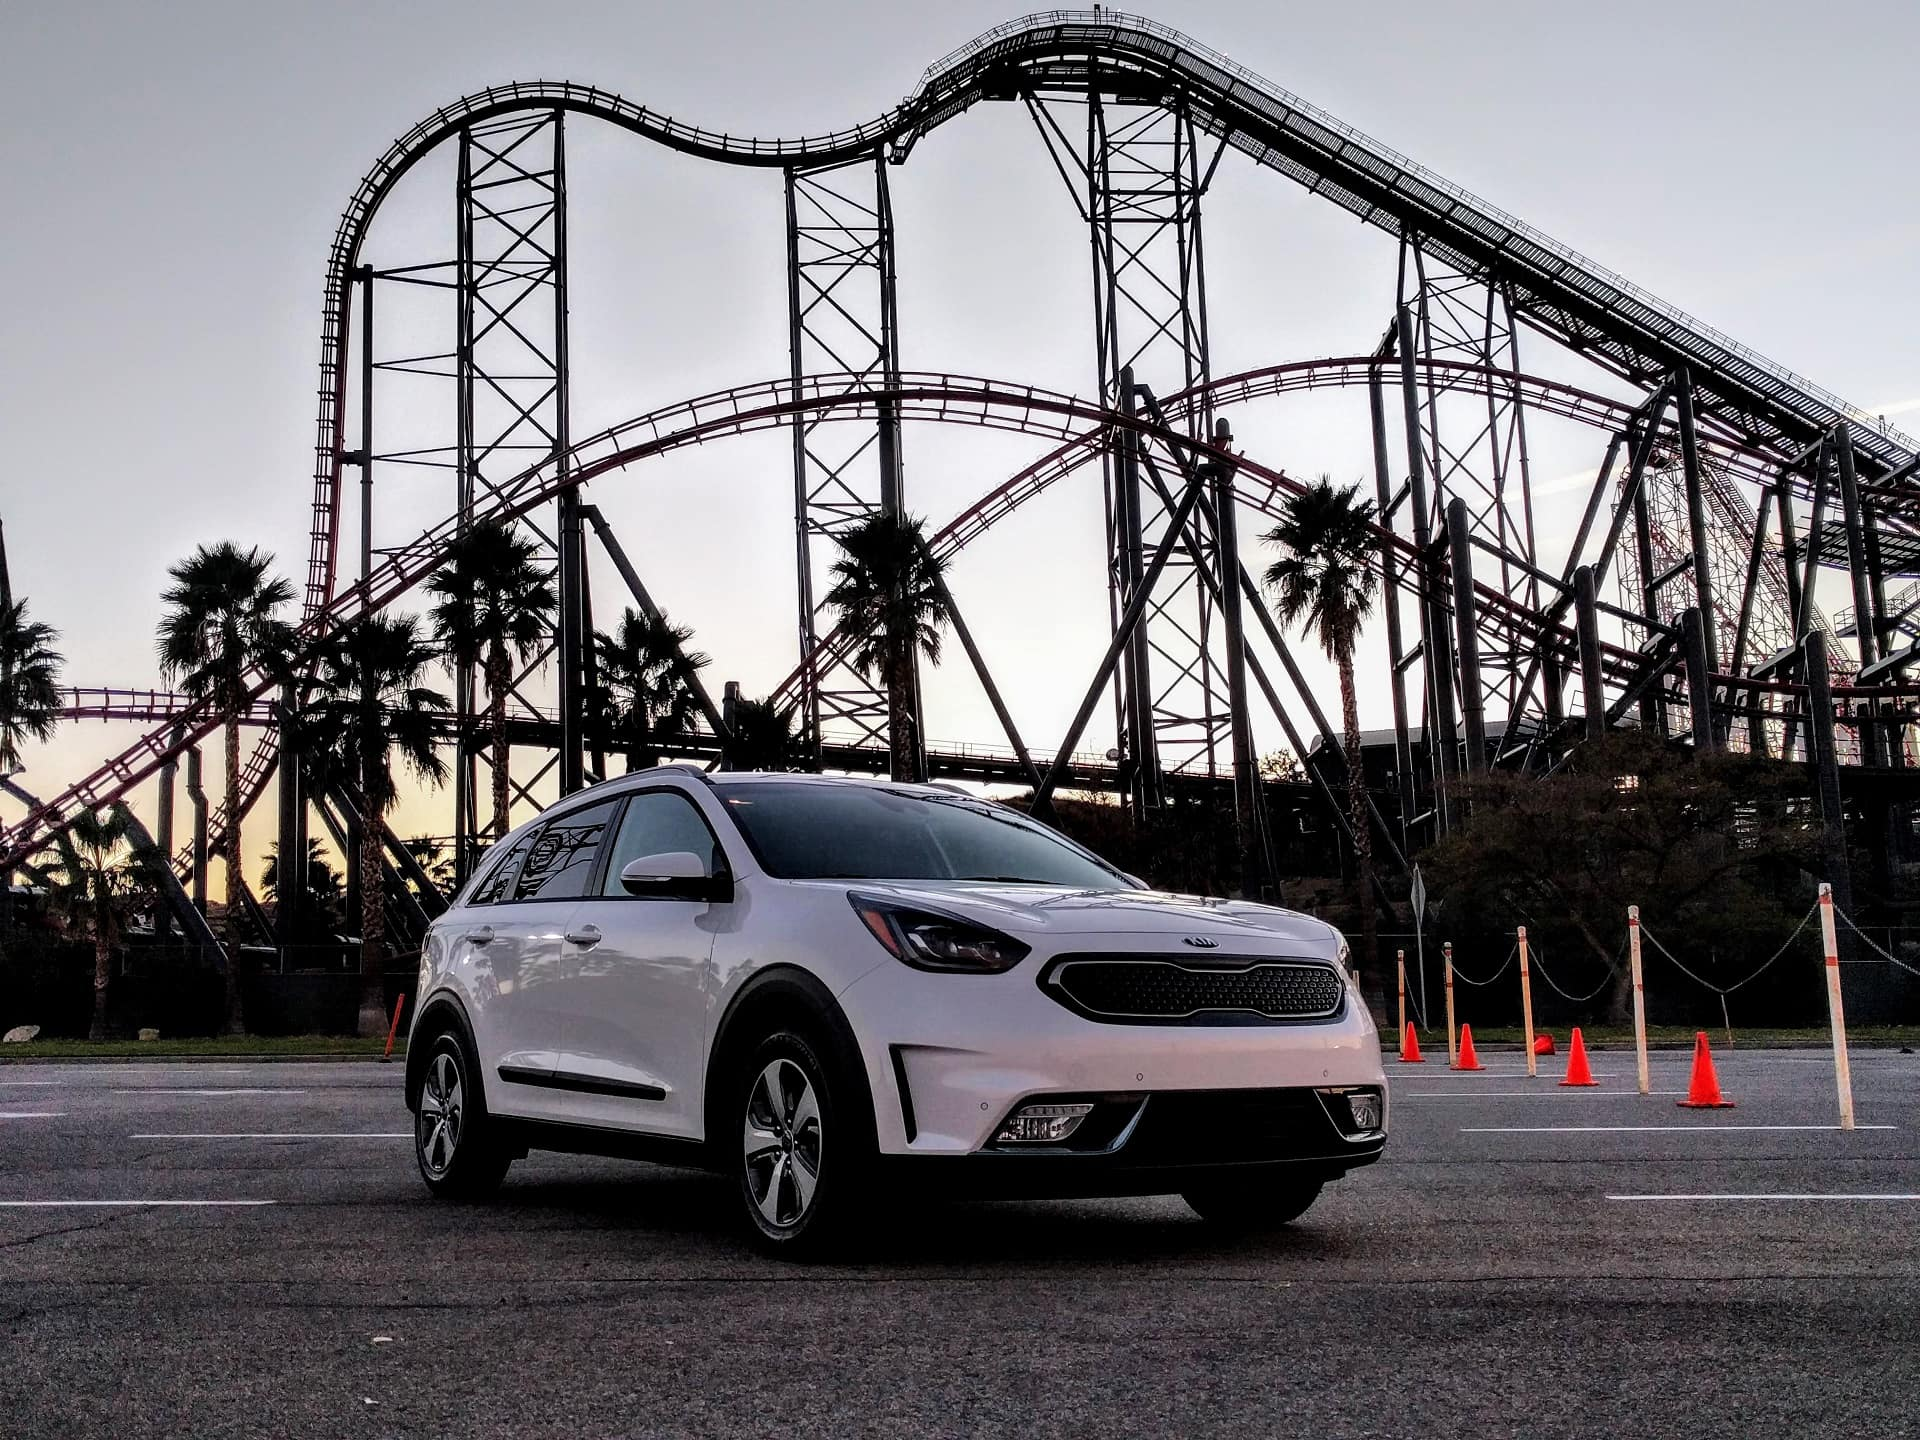 2018-kia-niro-plug-in-hybrid-six-flags-magic-mountain-california-dec-2017 100637205 H